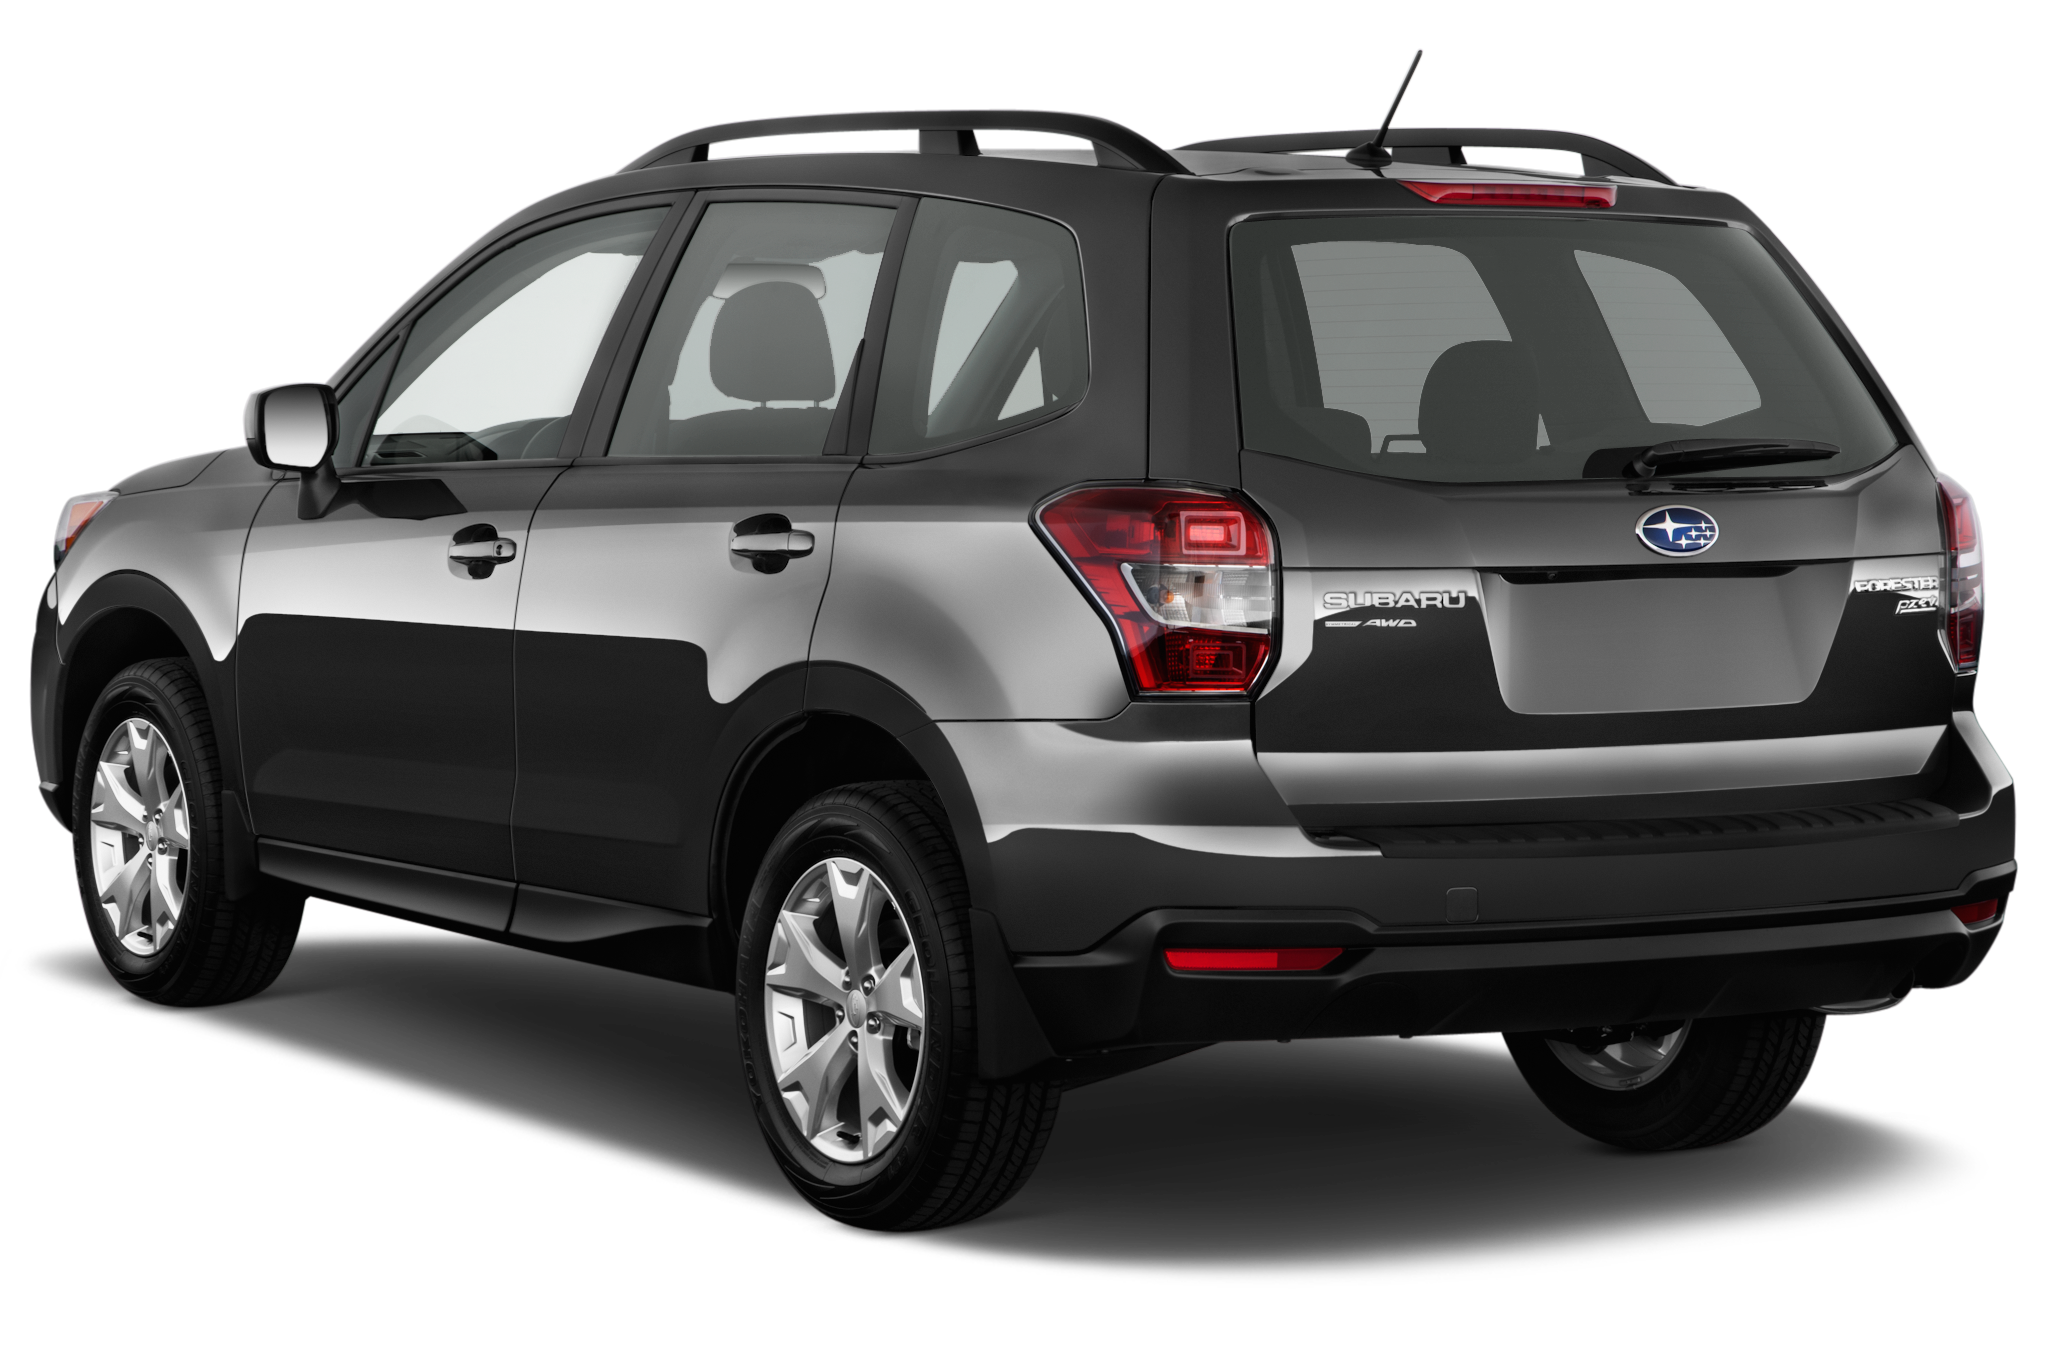 2015 subaru forester updated starts at 23 045. Black Bedroom Furniture Sets. Home Design Ideas